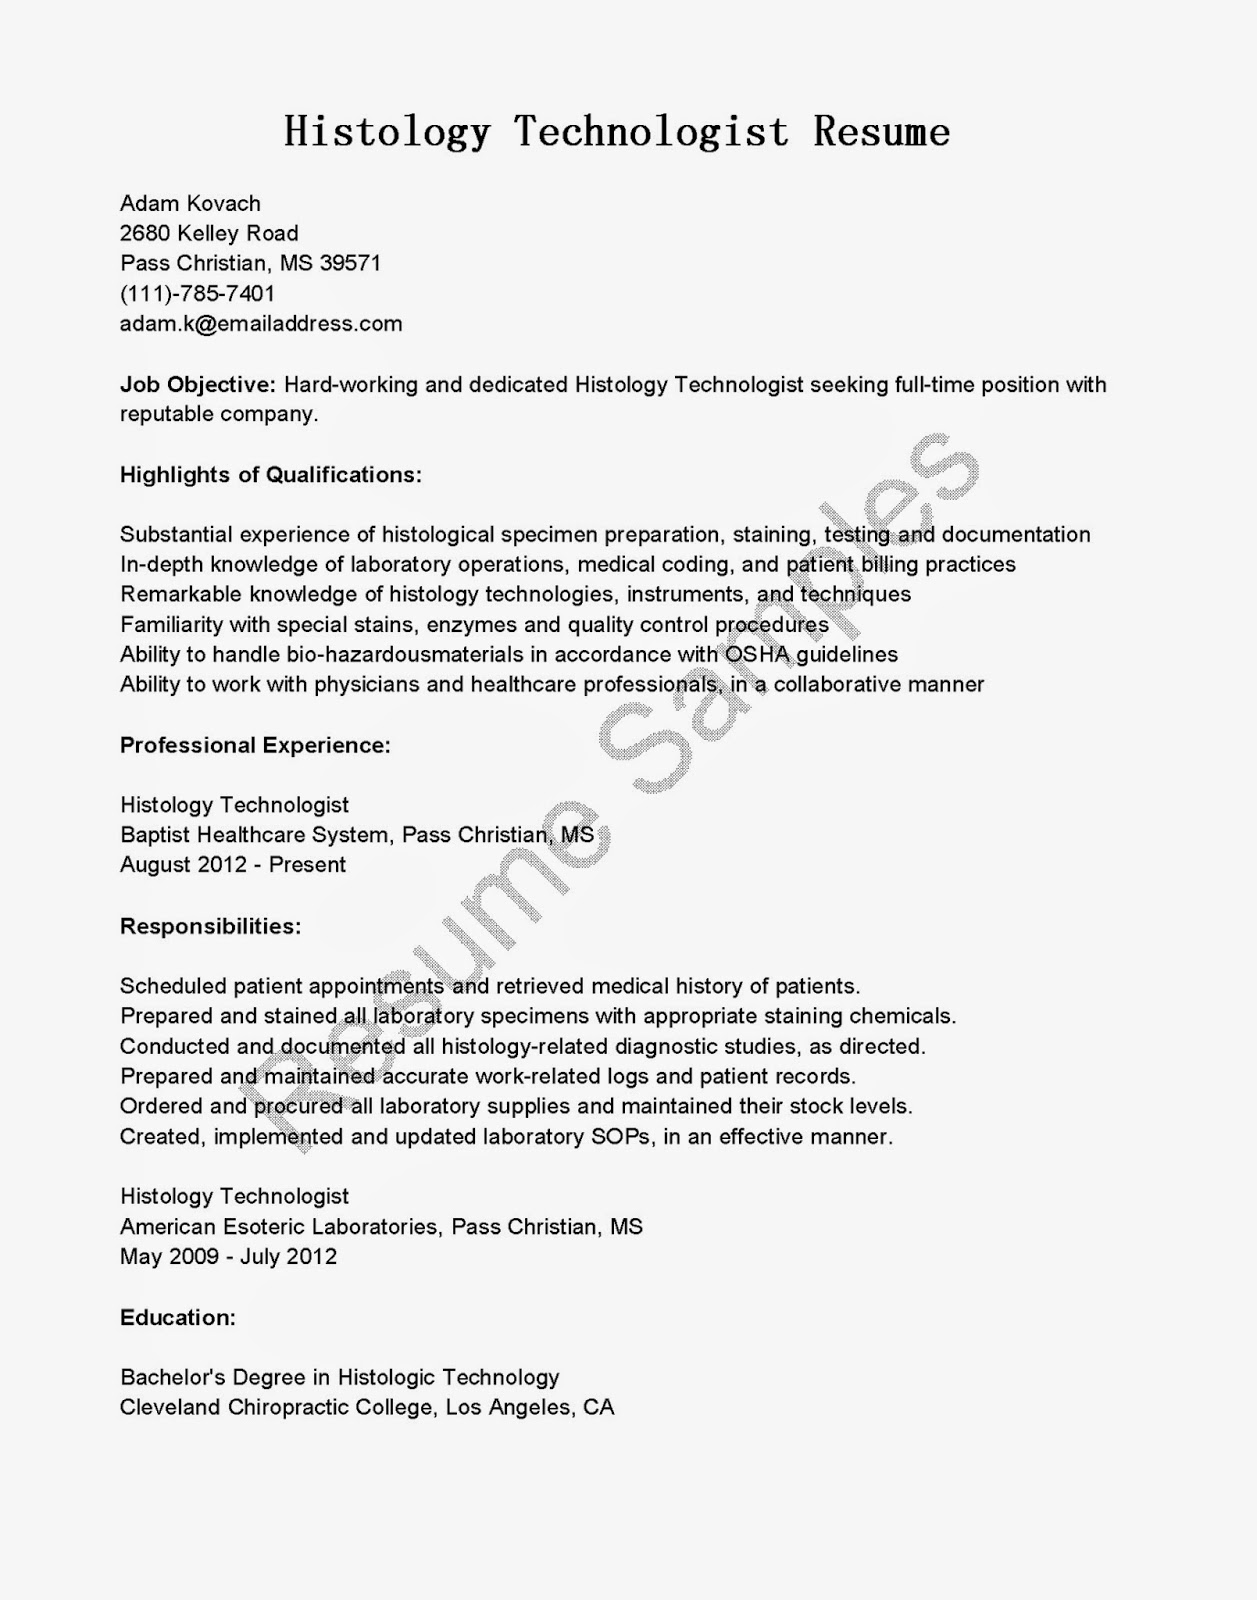 Resume Samples Histology Technologist Resume Sample